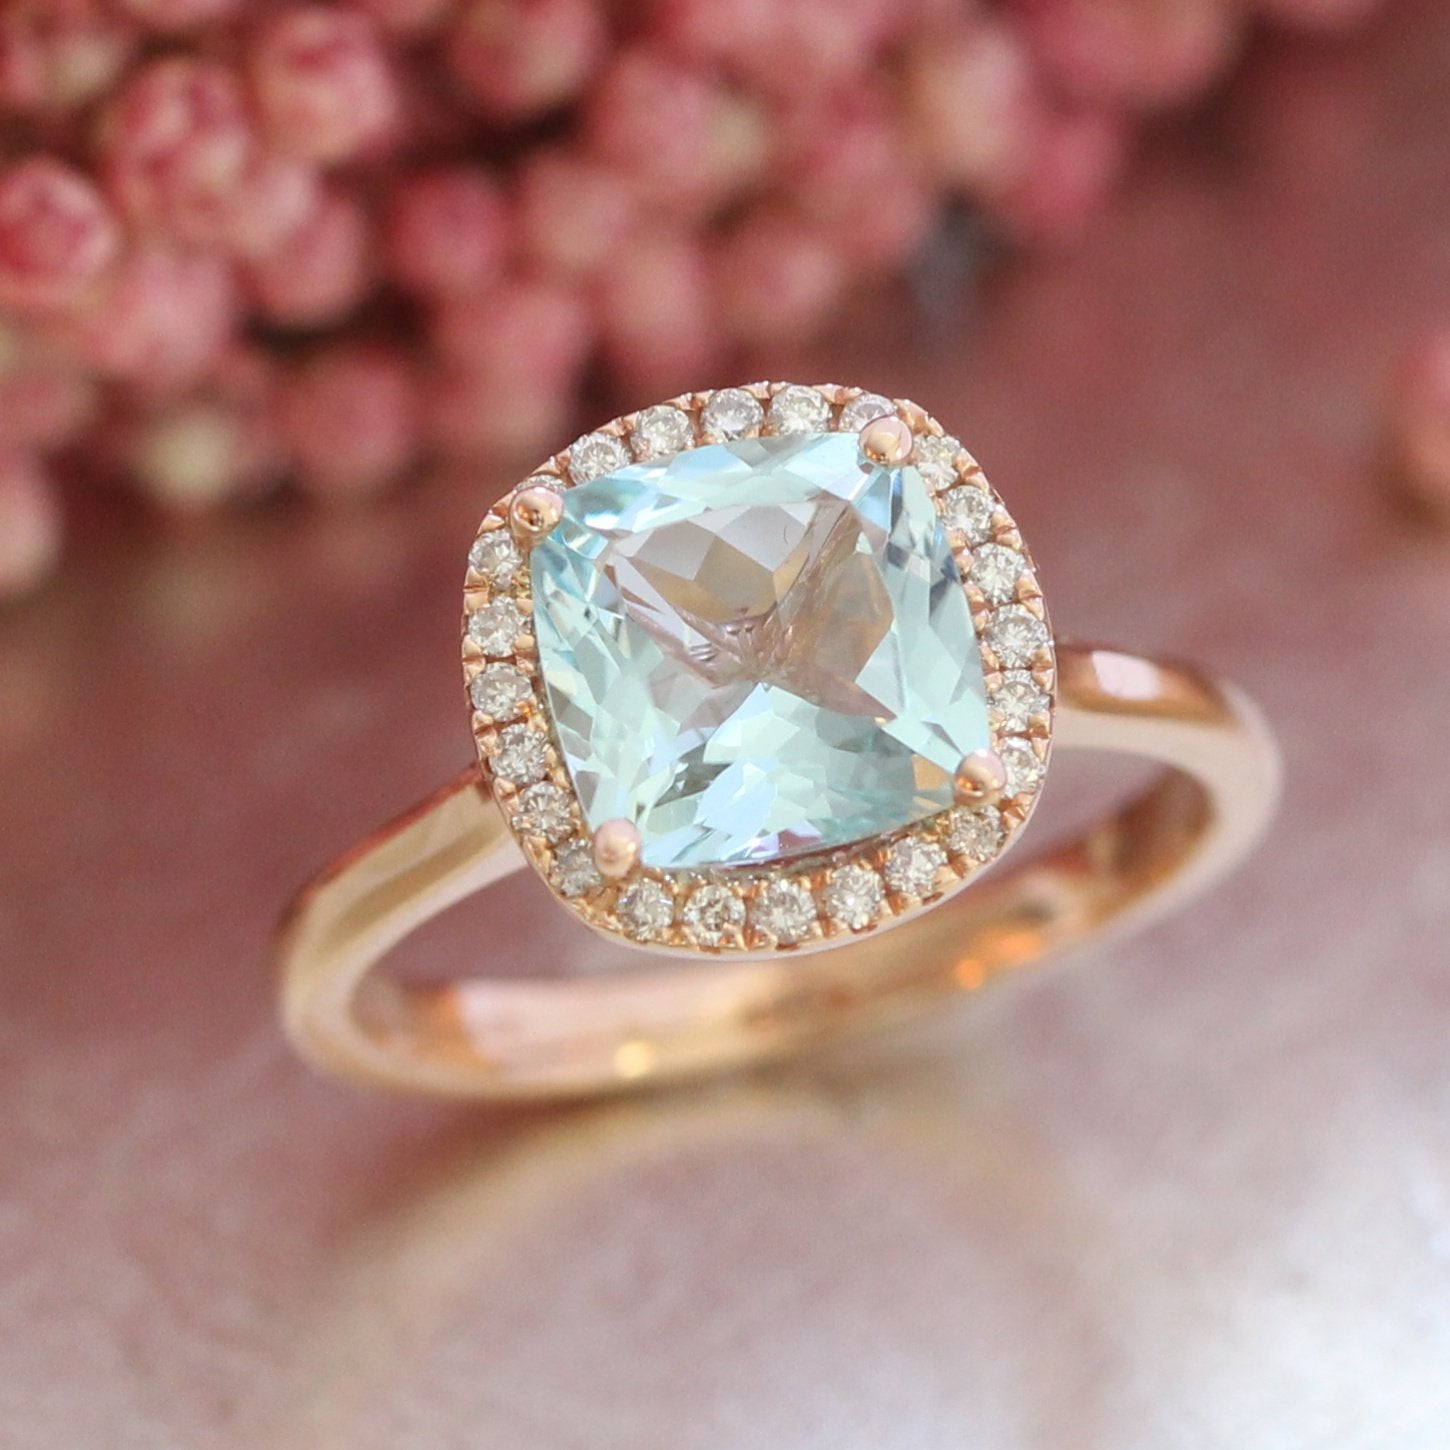 Luna Halo Ring W Cushion Cut Aquamarine And Diamond